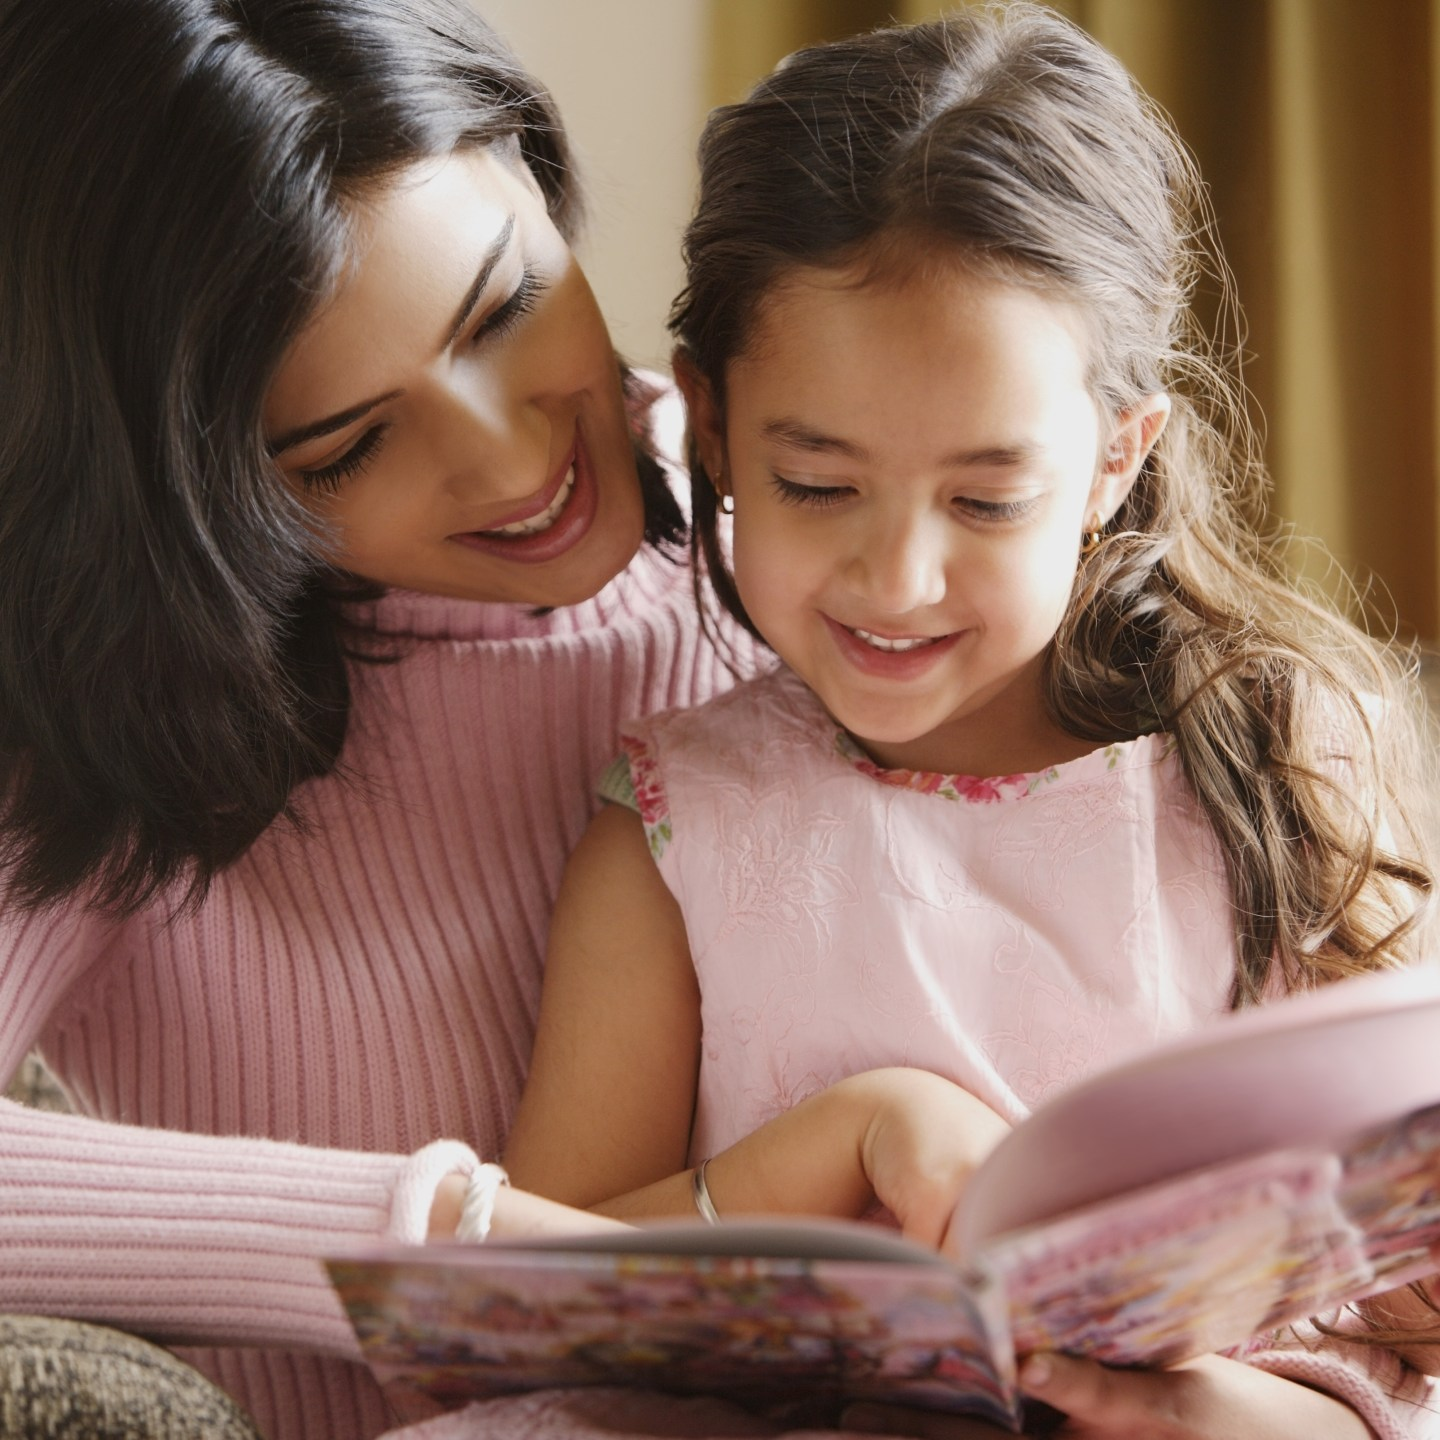 How to Make your Children Read More